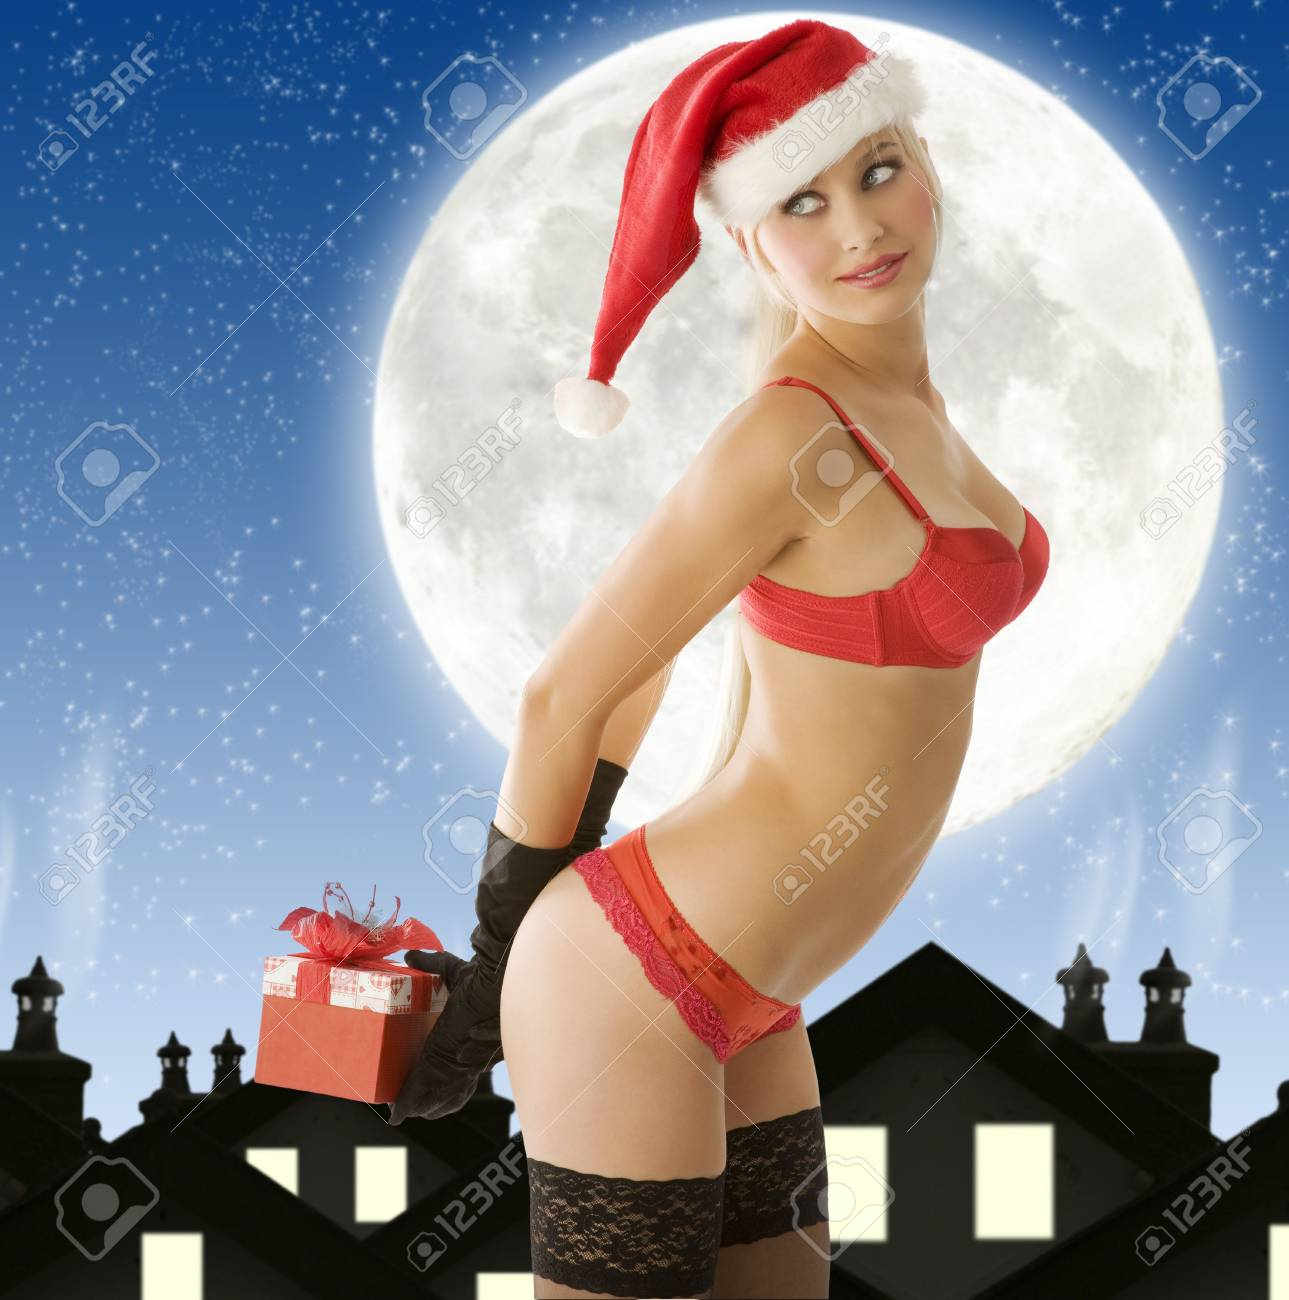 sexy christmas blond in lingerie with a big moon as background Stock Photo - 3886700